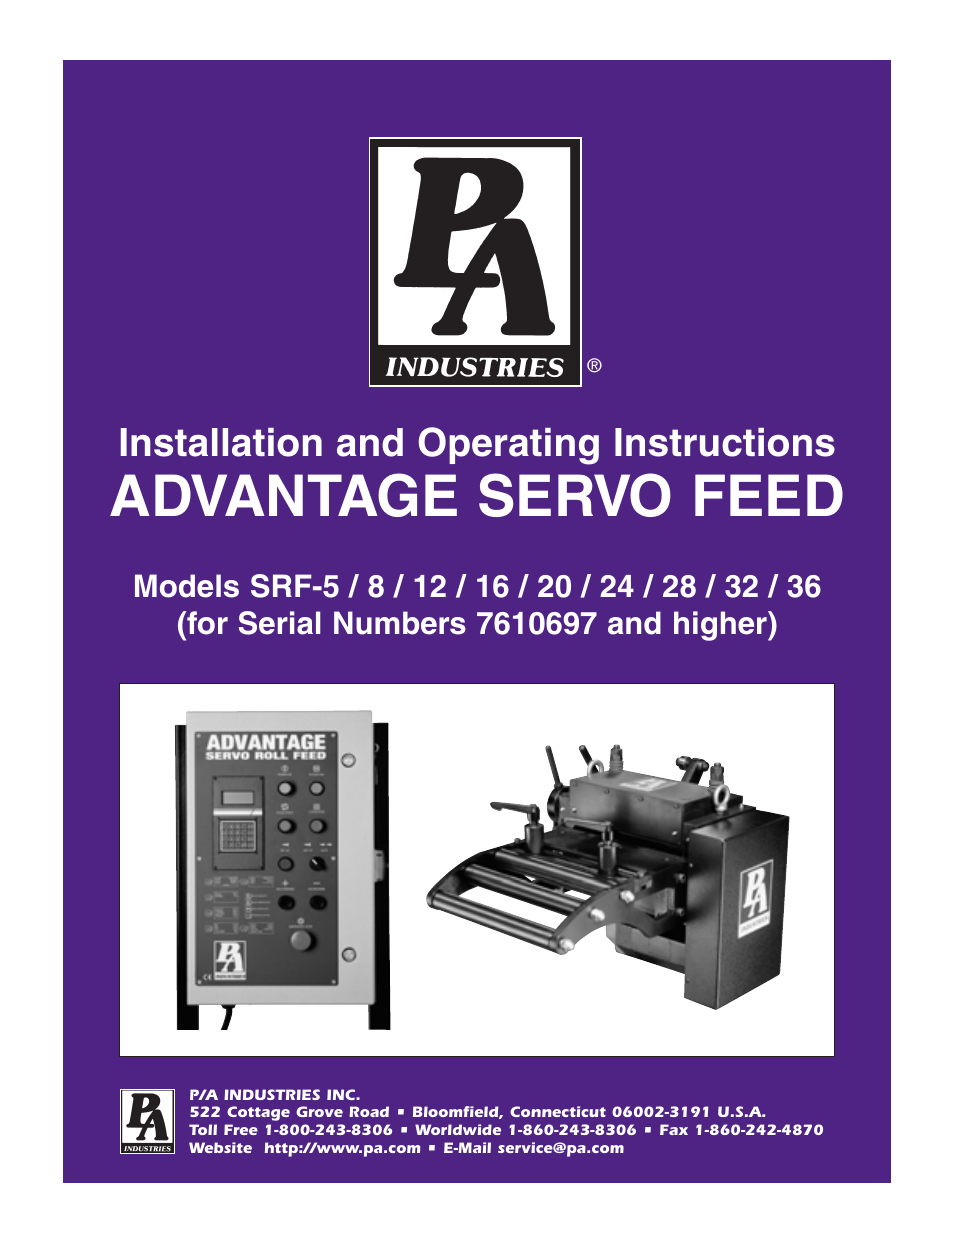 pa industries advantage servo roll feed srf 8  12  16  20